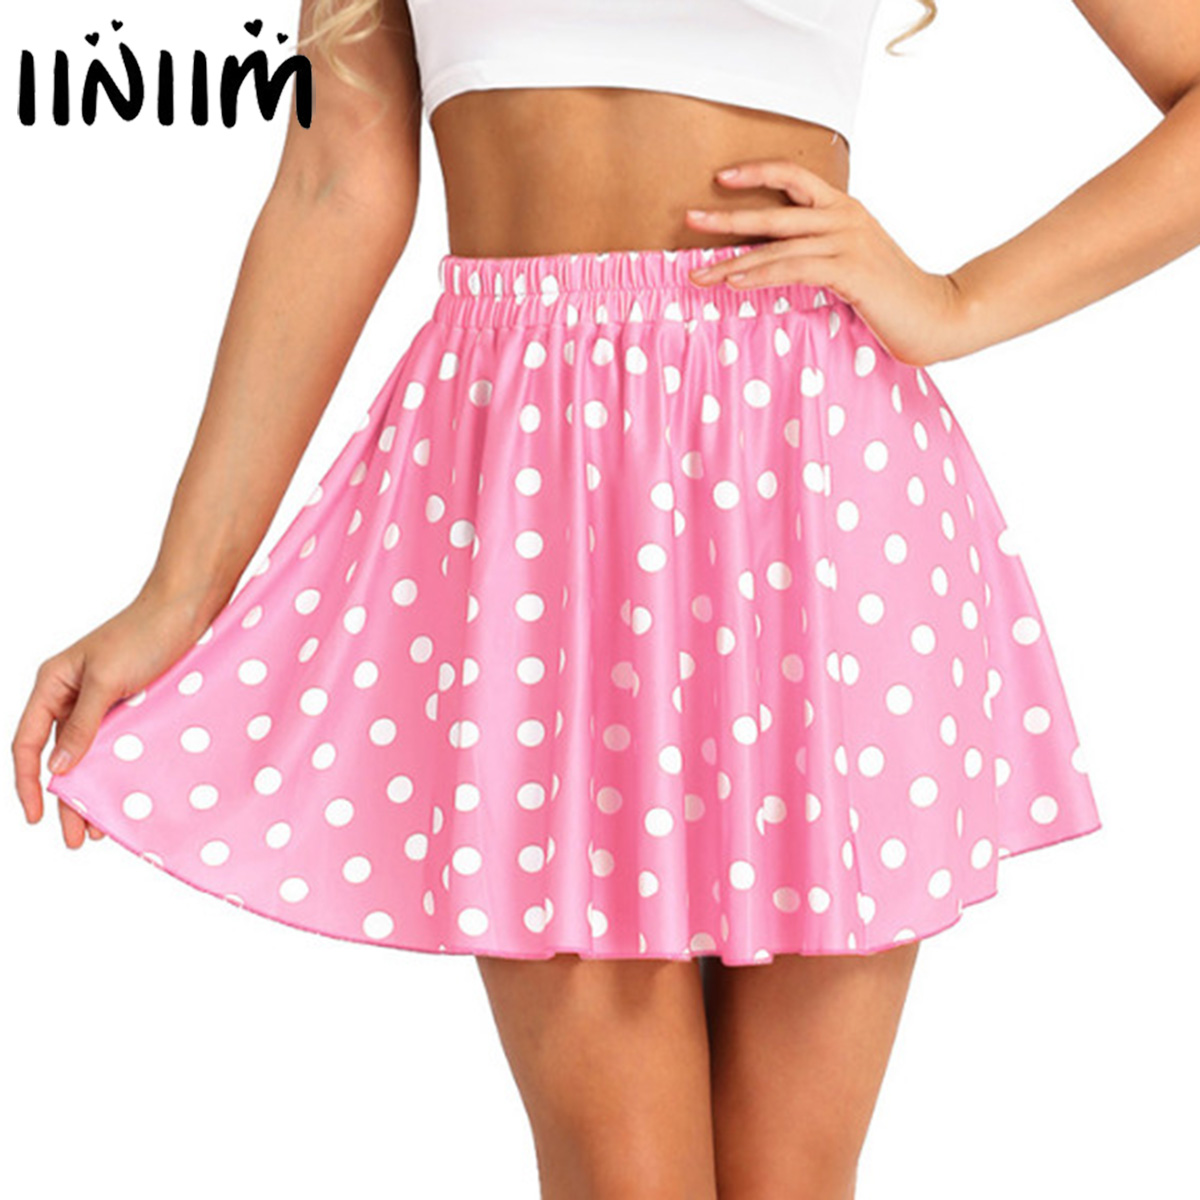 Fashion Women Mid Waist Polka Dot Basic Versatile Stretchy Swing Flared Casual Mini Skirt For Summer Party Office Ladies Skirts